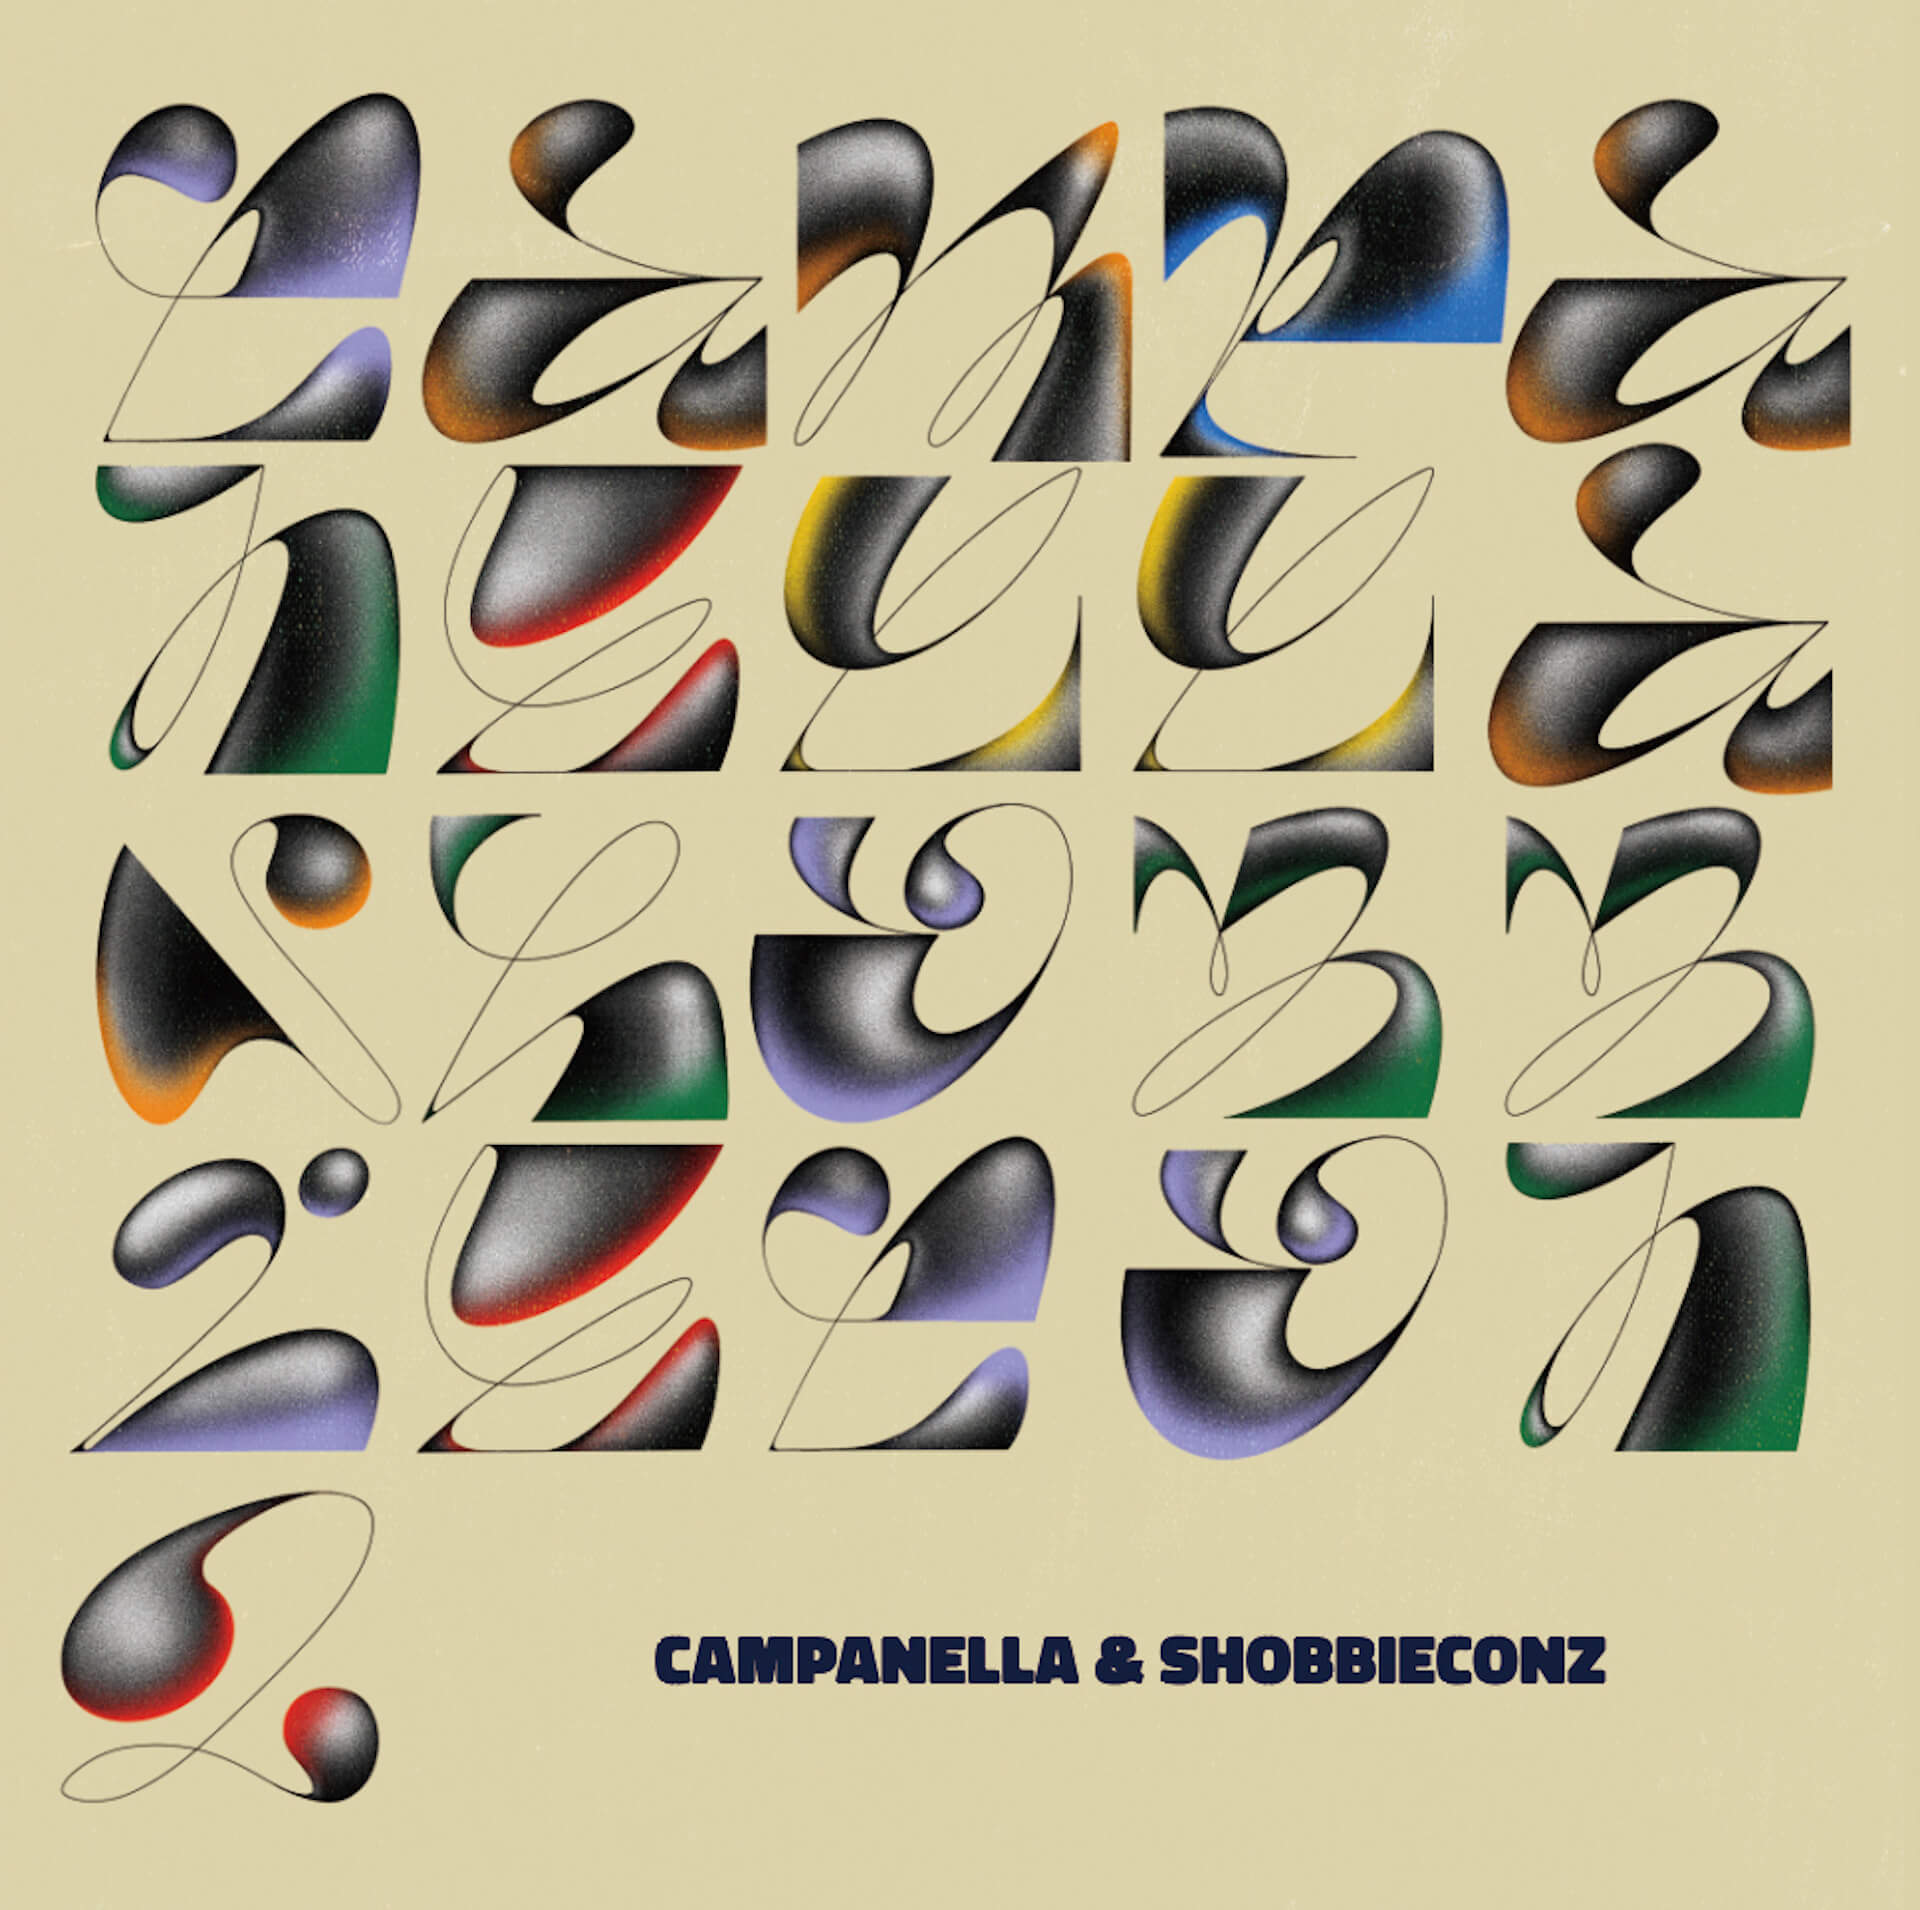 Campanella&shobbieconzによる縦横無尽な良質MIX CD『ORE LA IN YA AREA』が〈ROYALTY CLUB〉よりリリース決定! music200909_campanella_shobbieconz_main